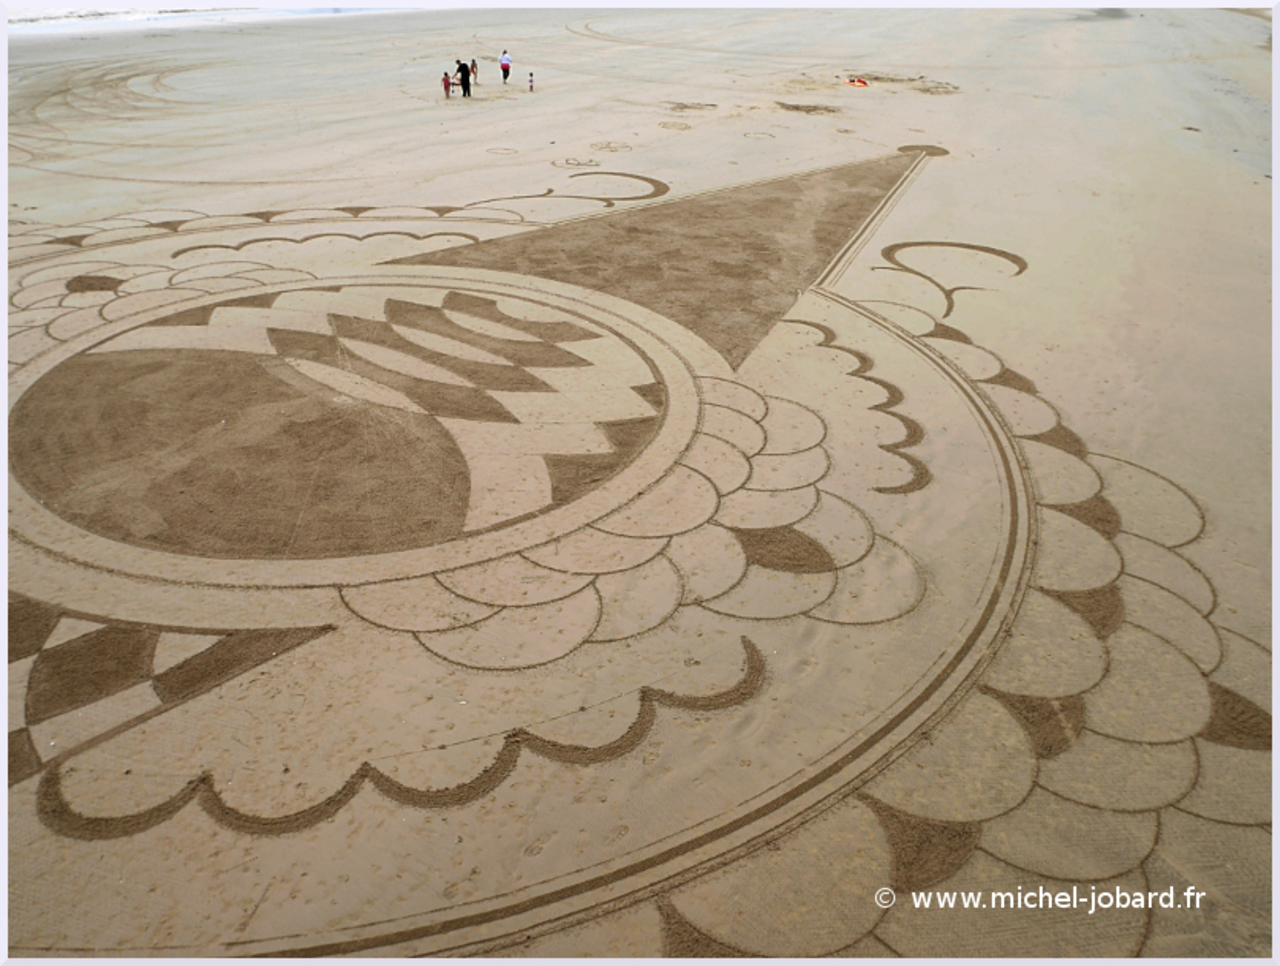 Beach-art-Surfrider-07